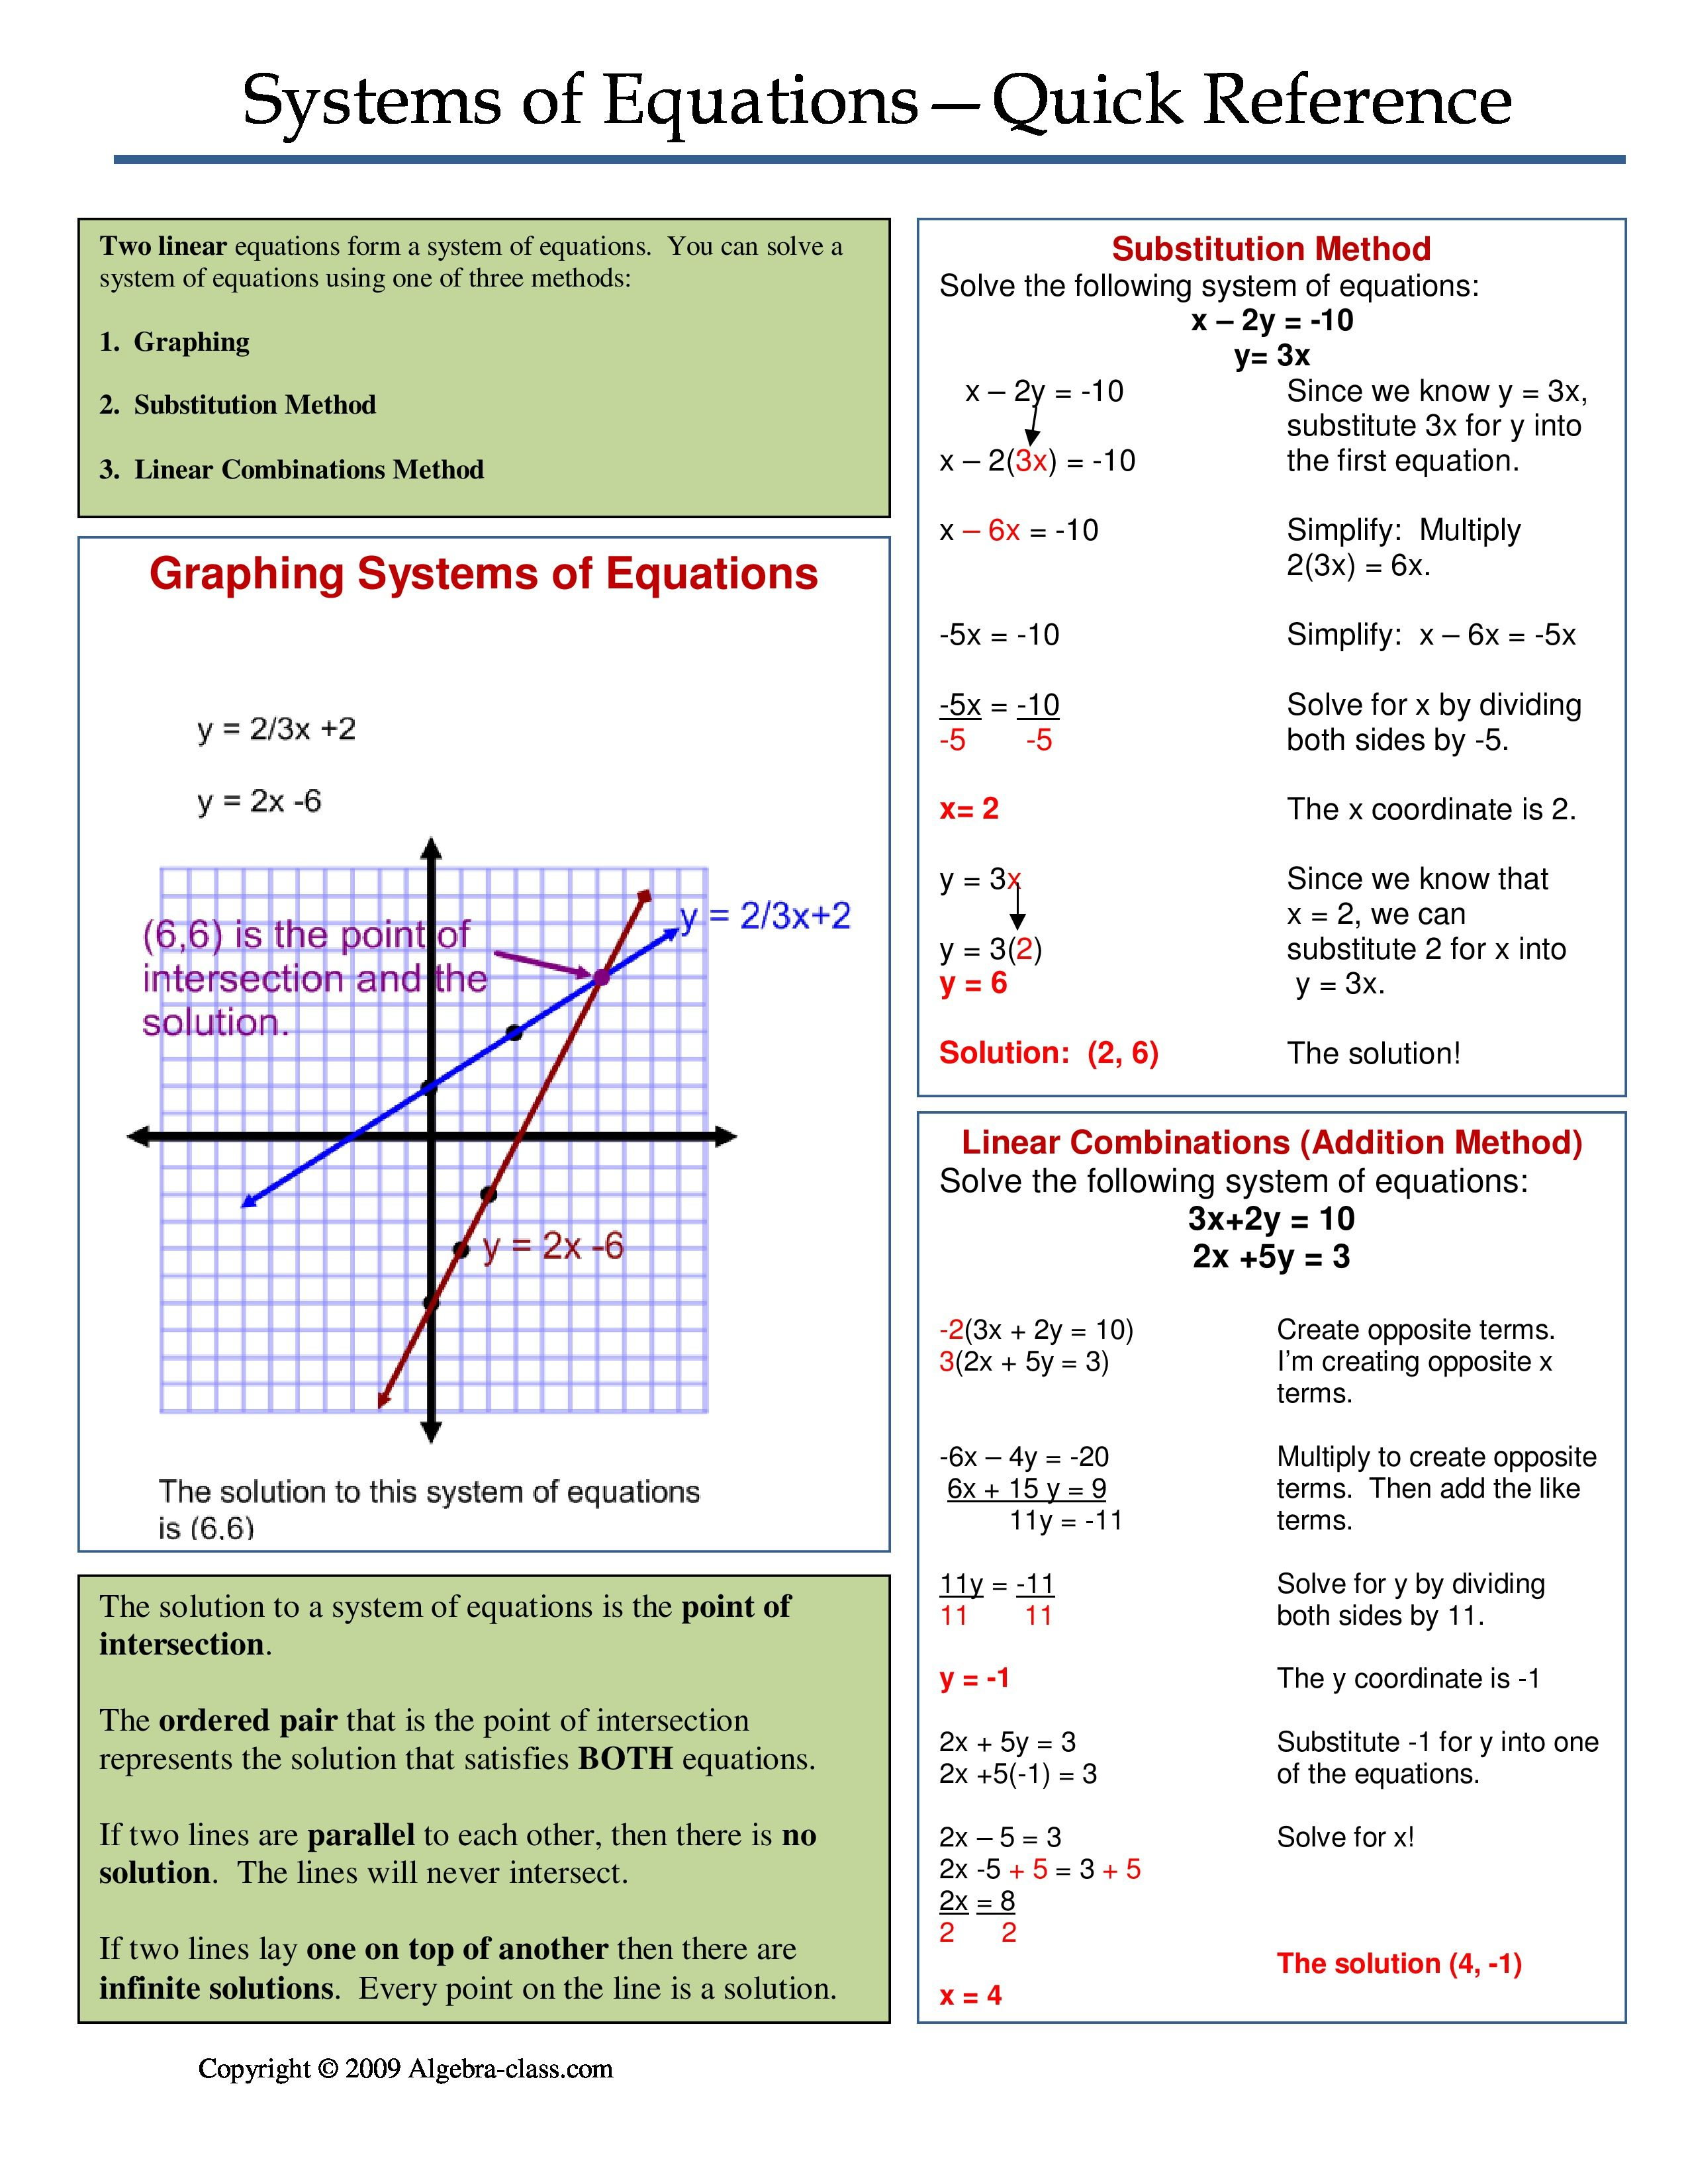 small resolution of One page notes worksheet for Systems of Equations Unit.   Systems of  equations